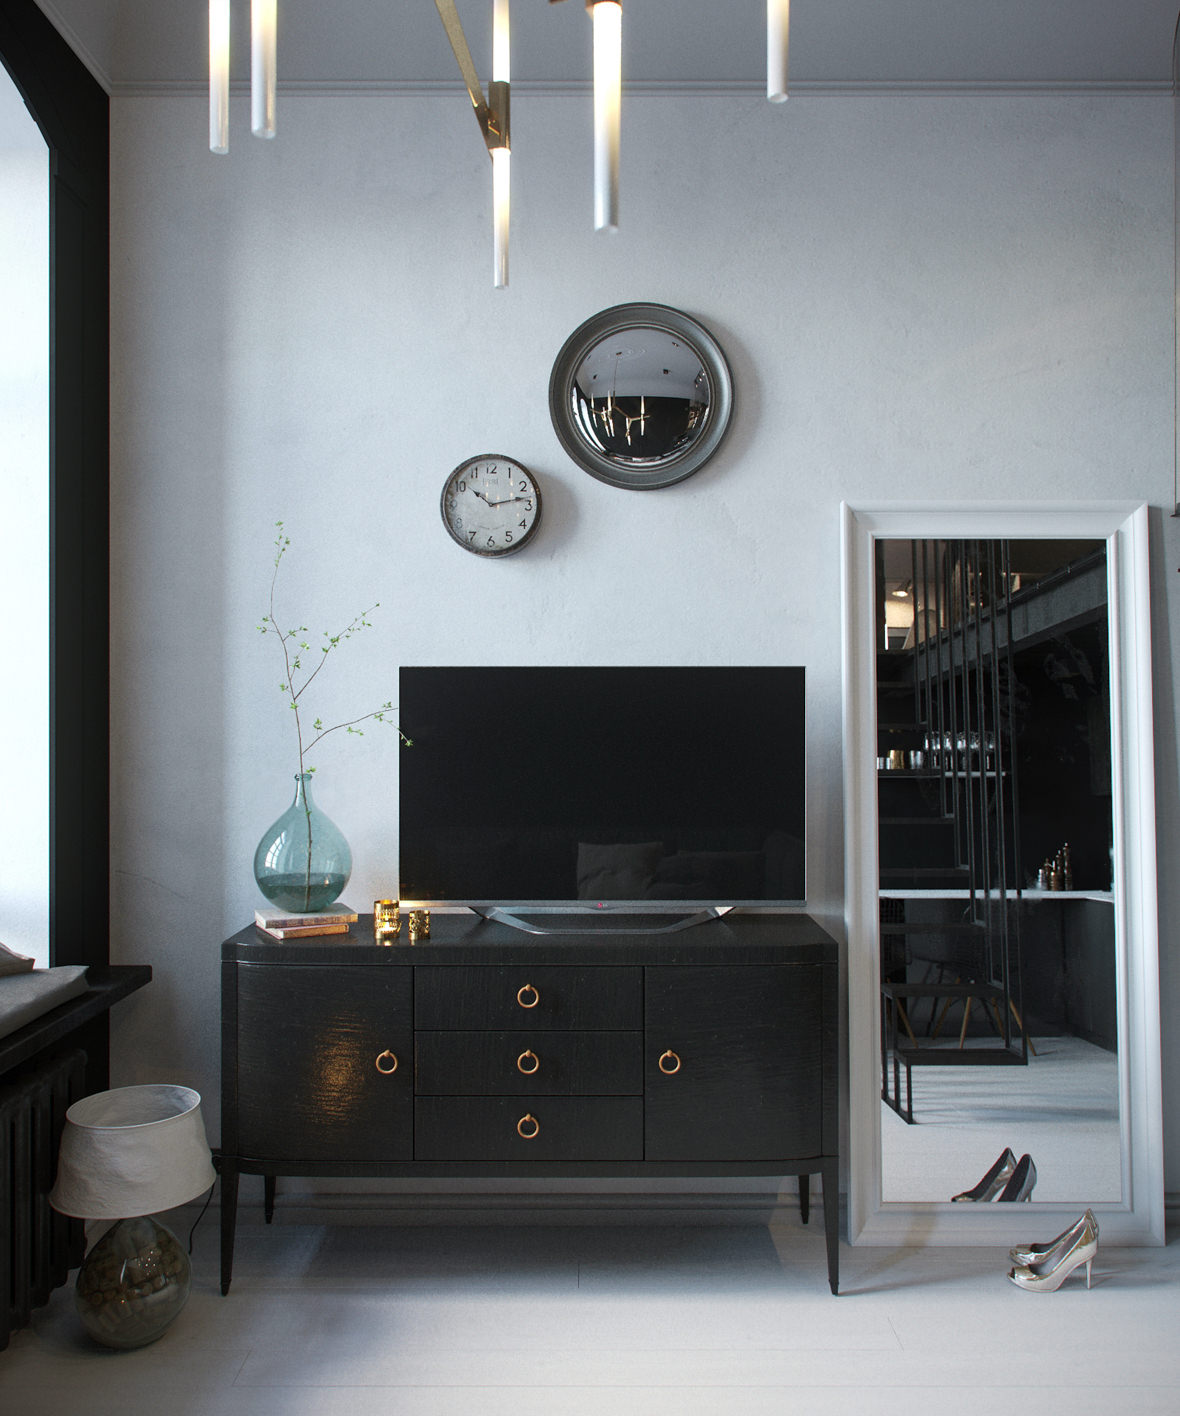 Stalinka. Photorealistic interior 3D render of living room with a TV console and mirrors